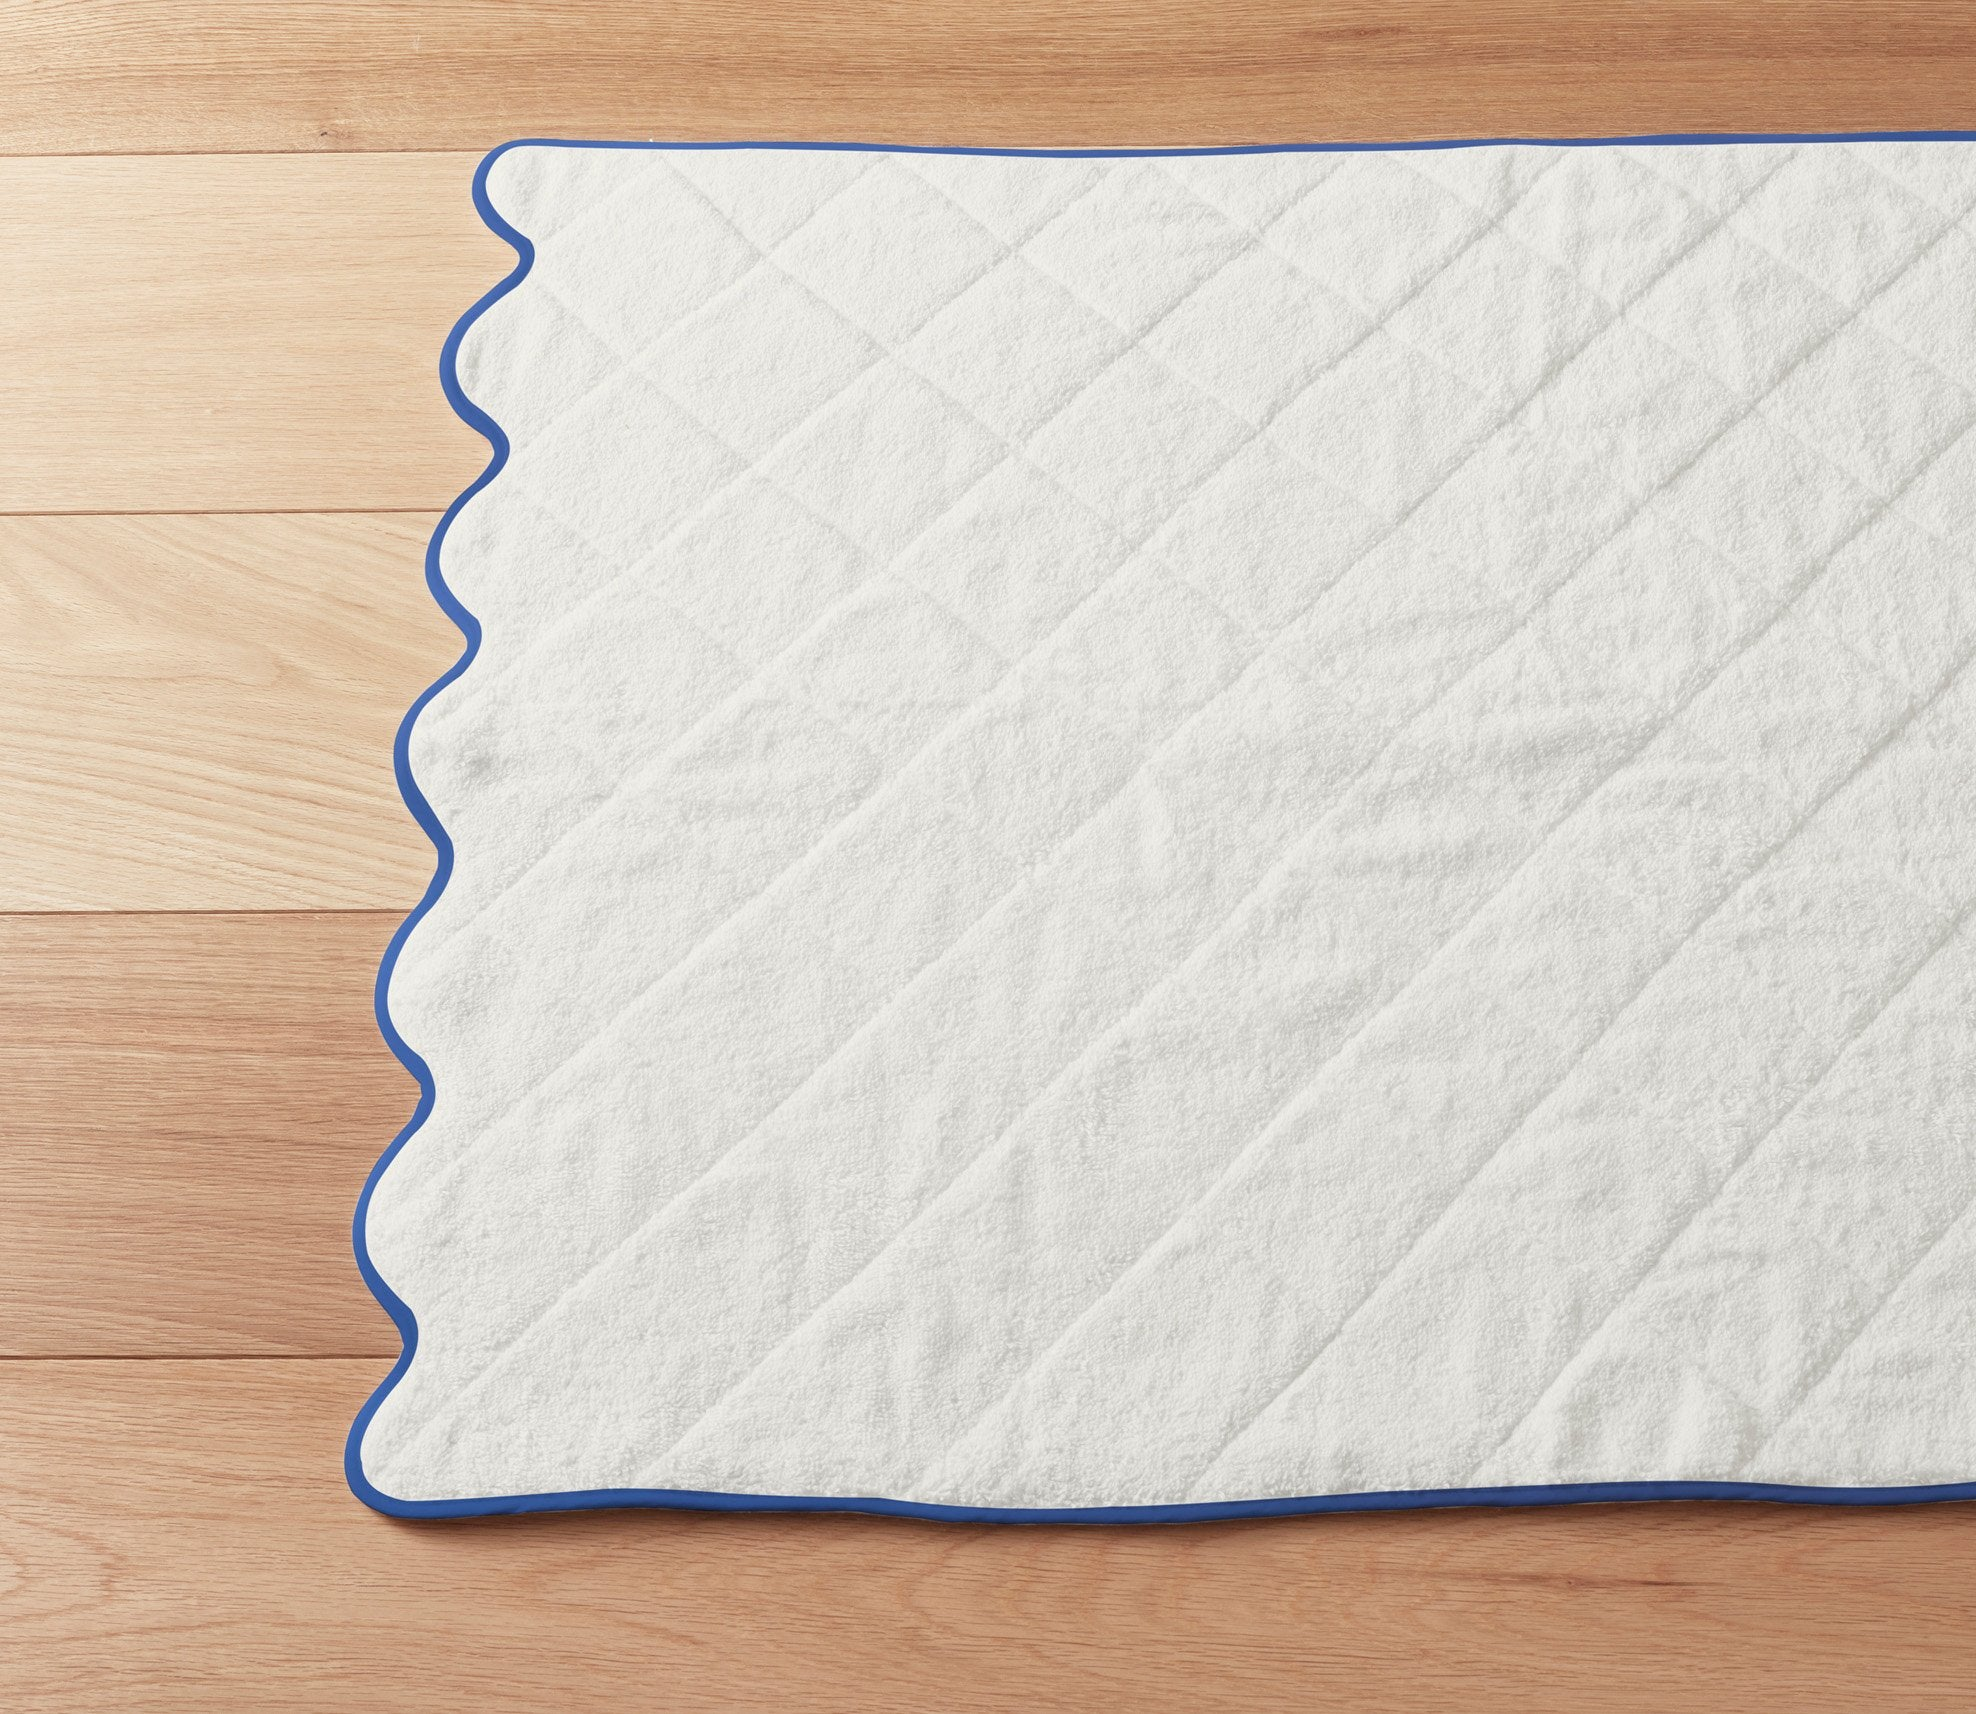 Scallop Bath Mat Custom Trim Product Image 2